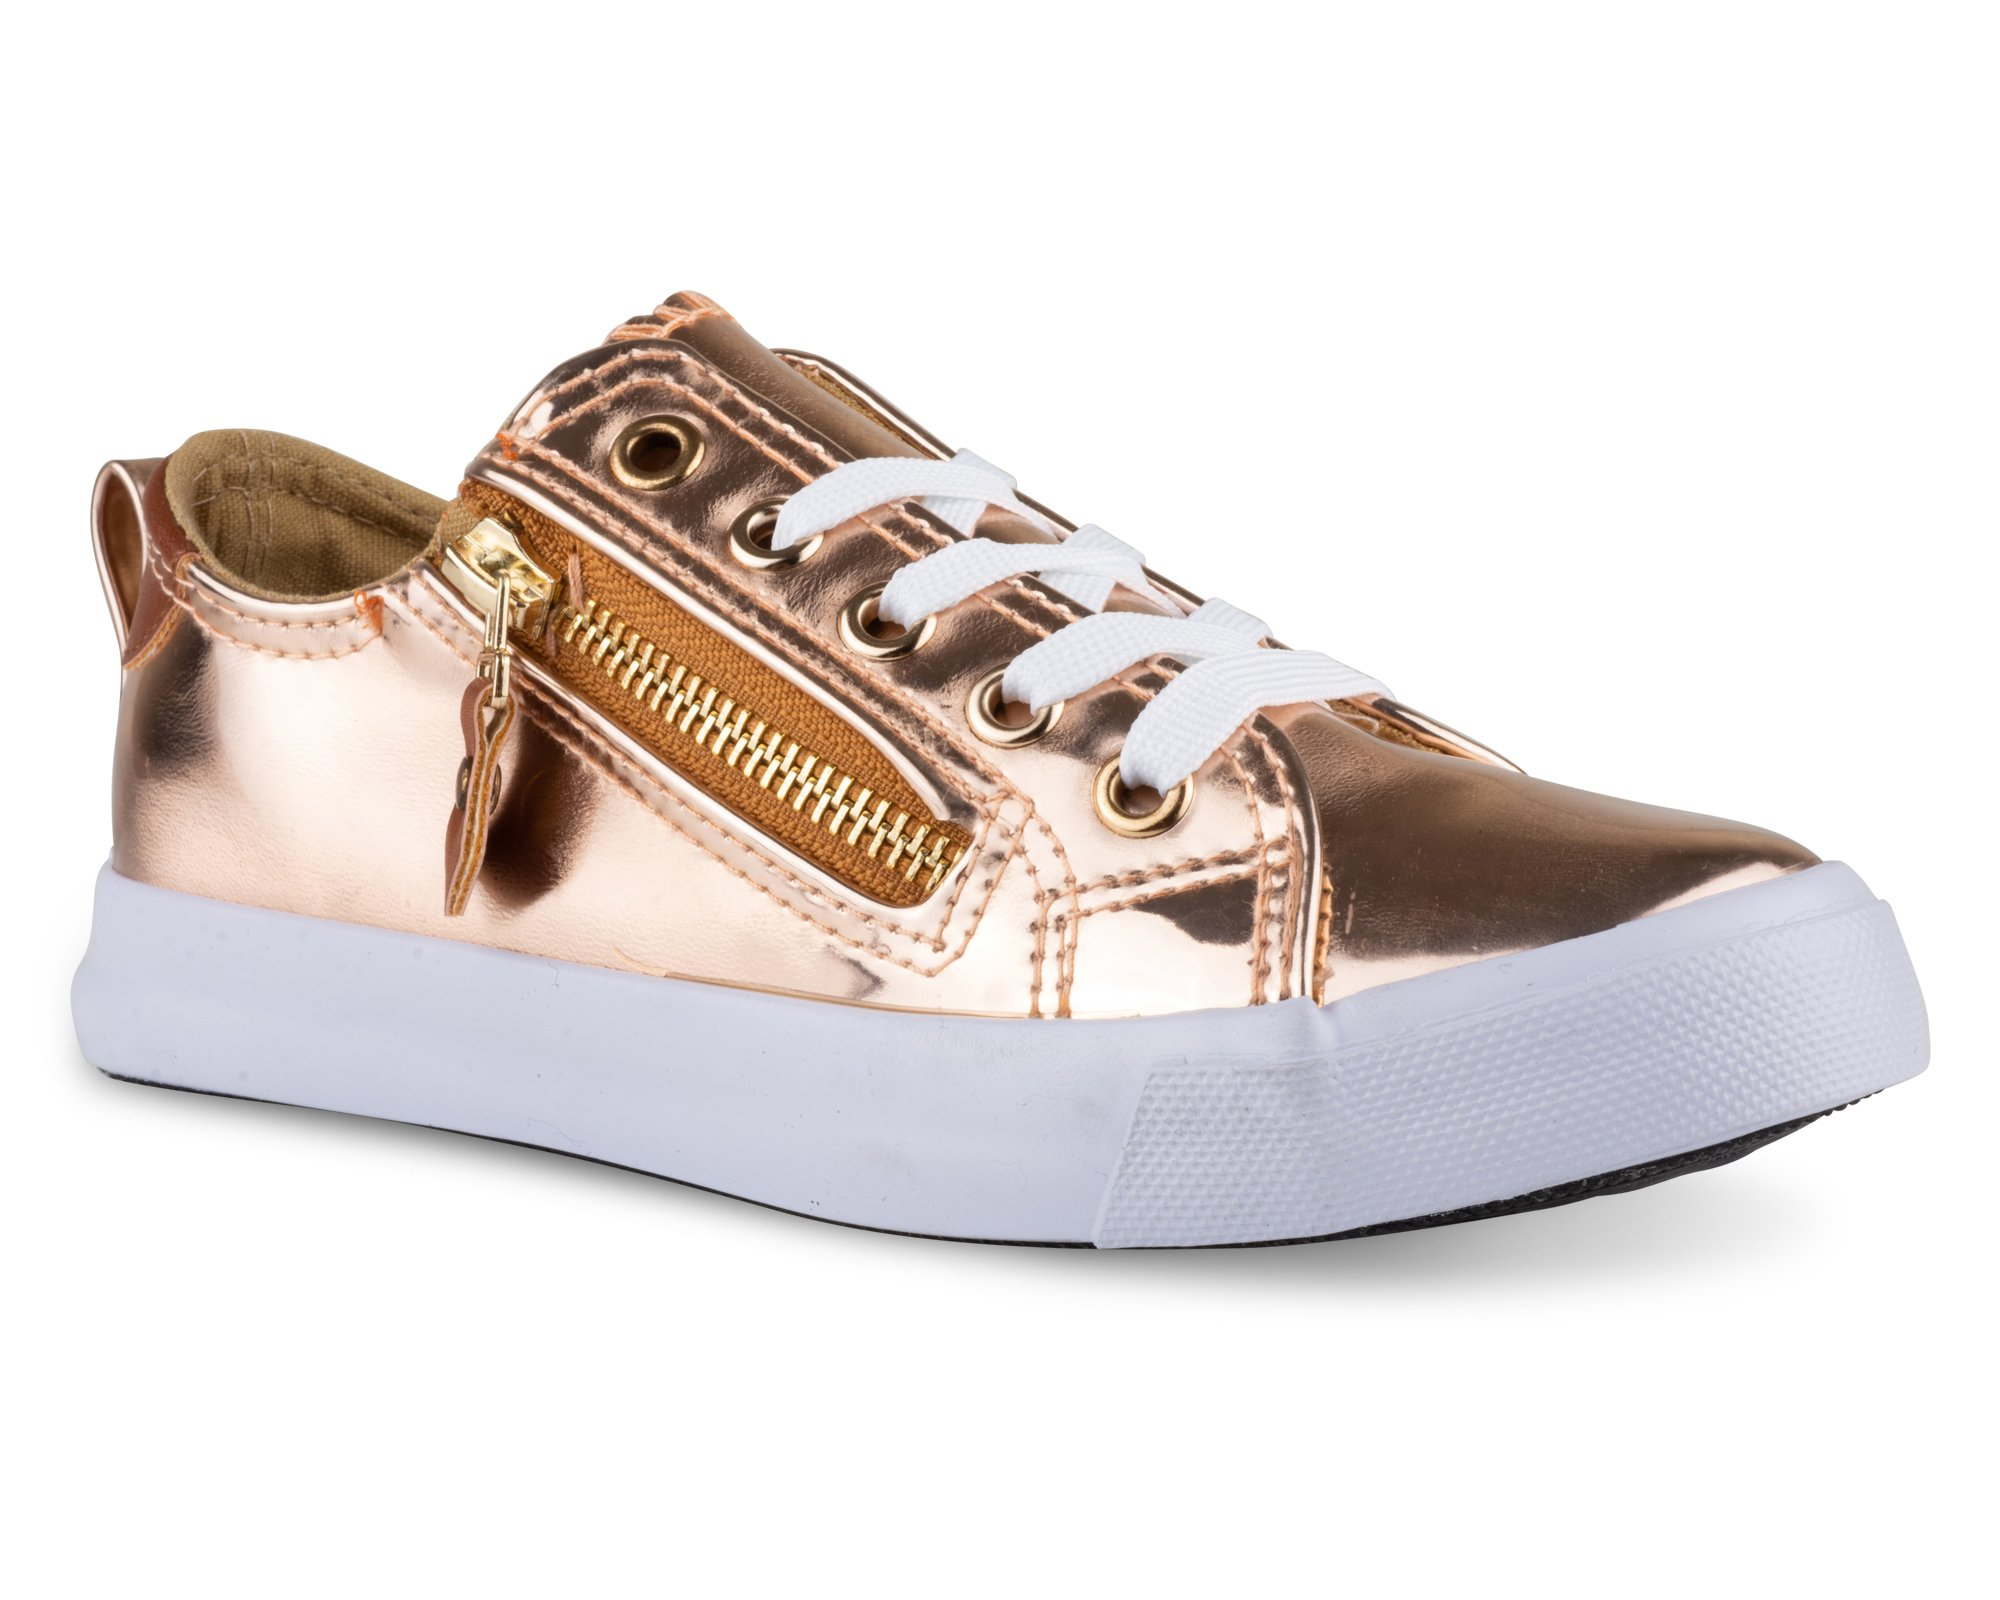 Twisted Girl's Faux Leather and Metallic Sneaker - KIXLO213KROSE Gold, Size 13